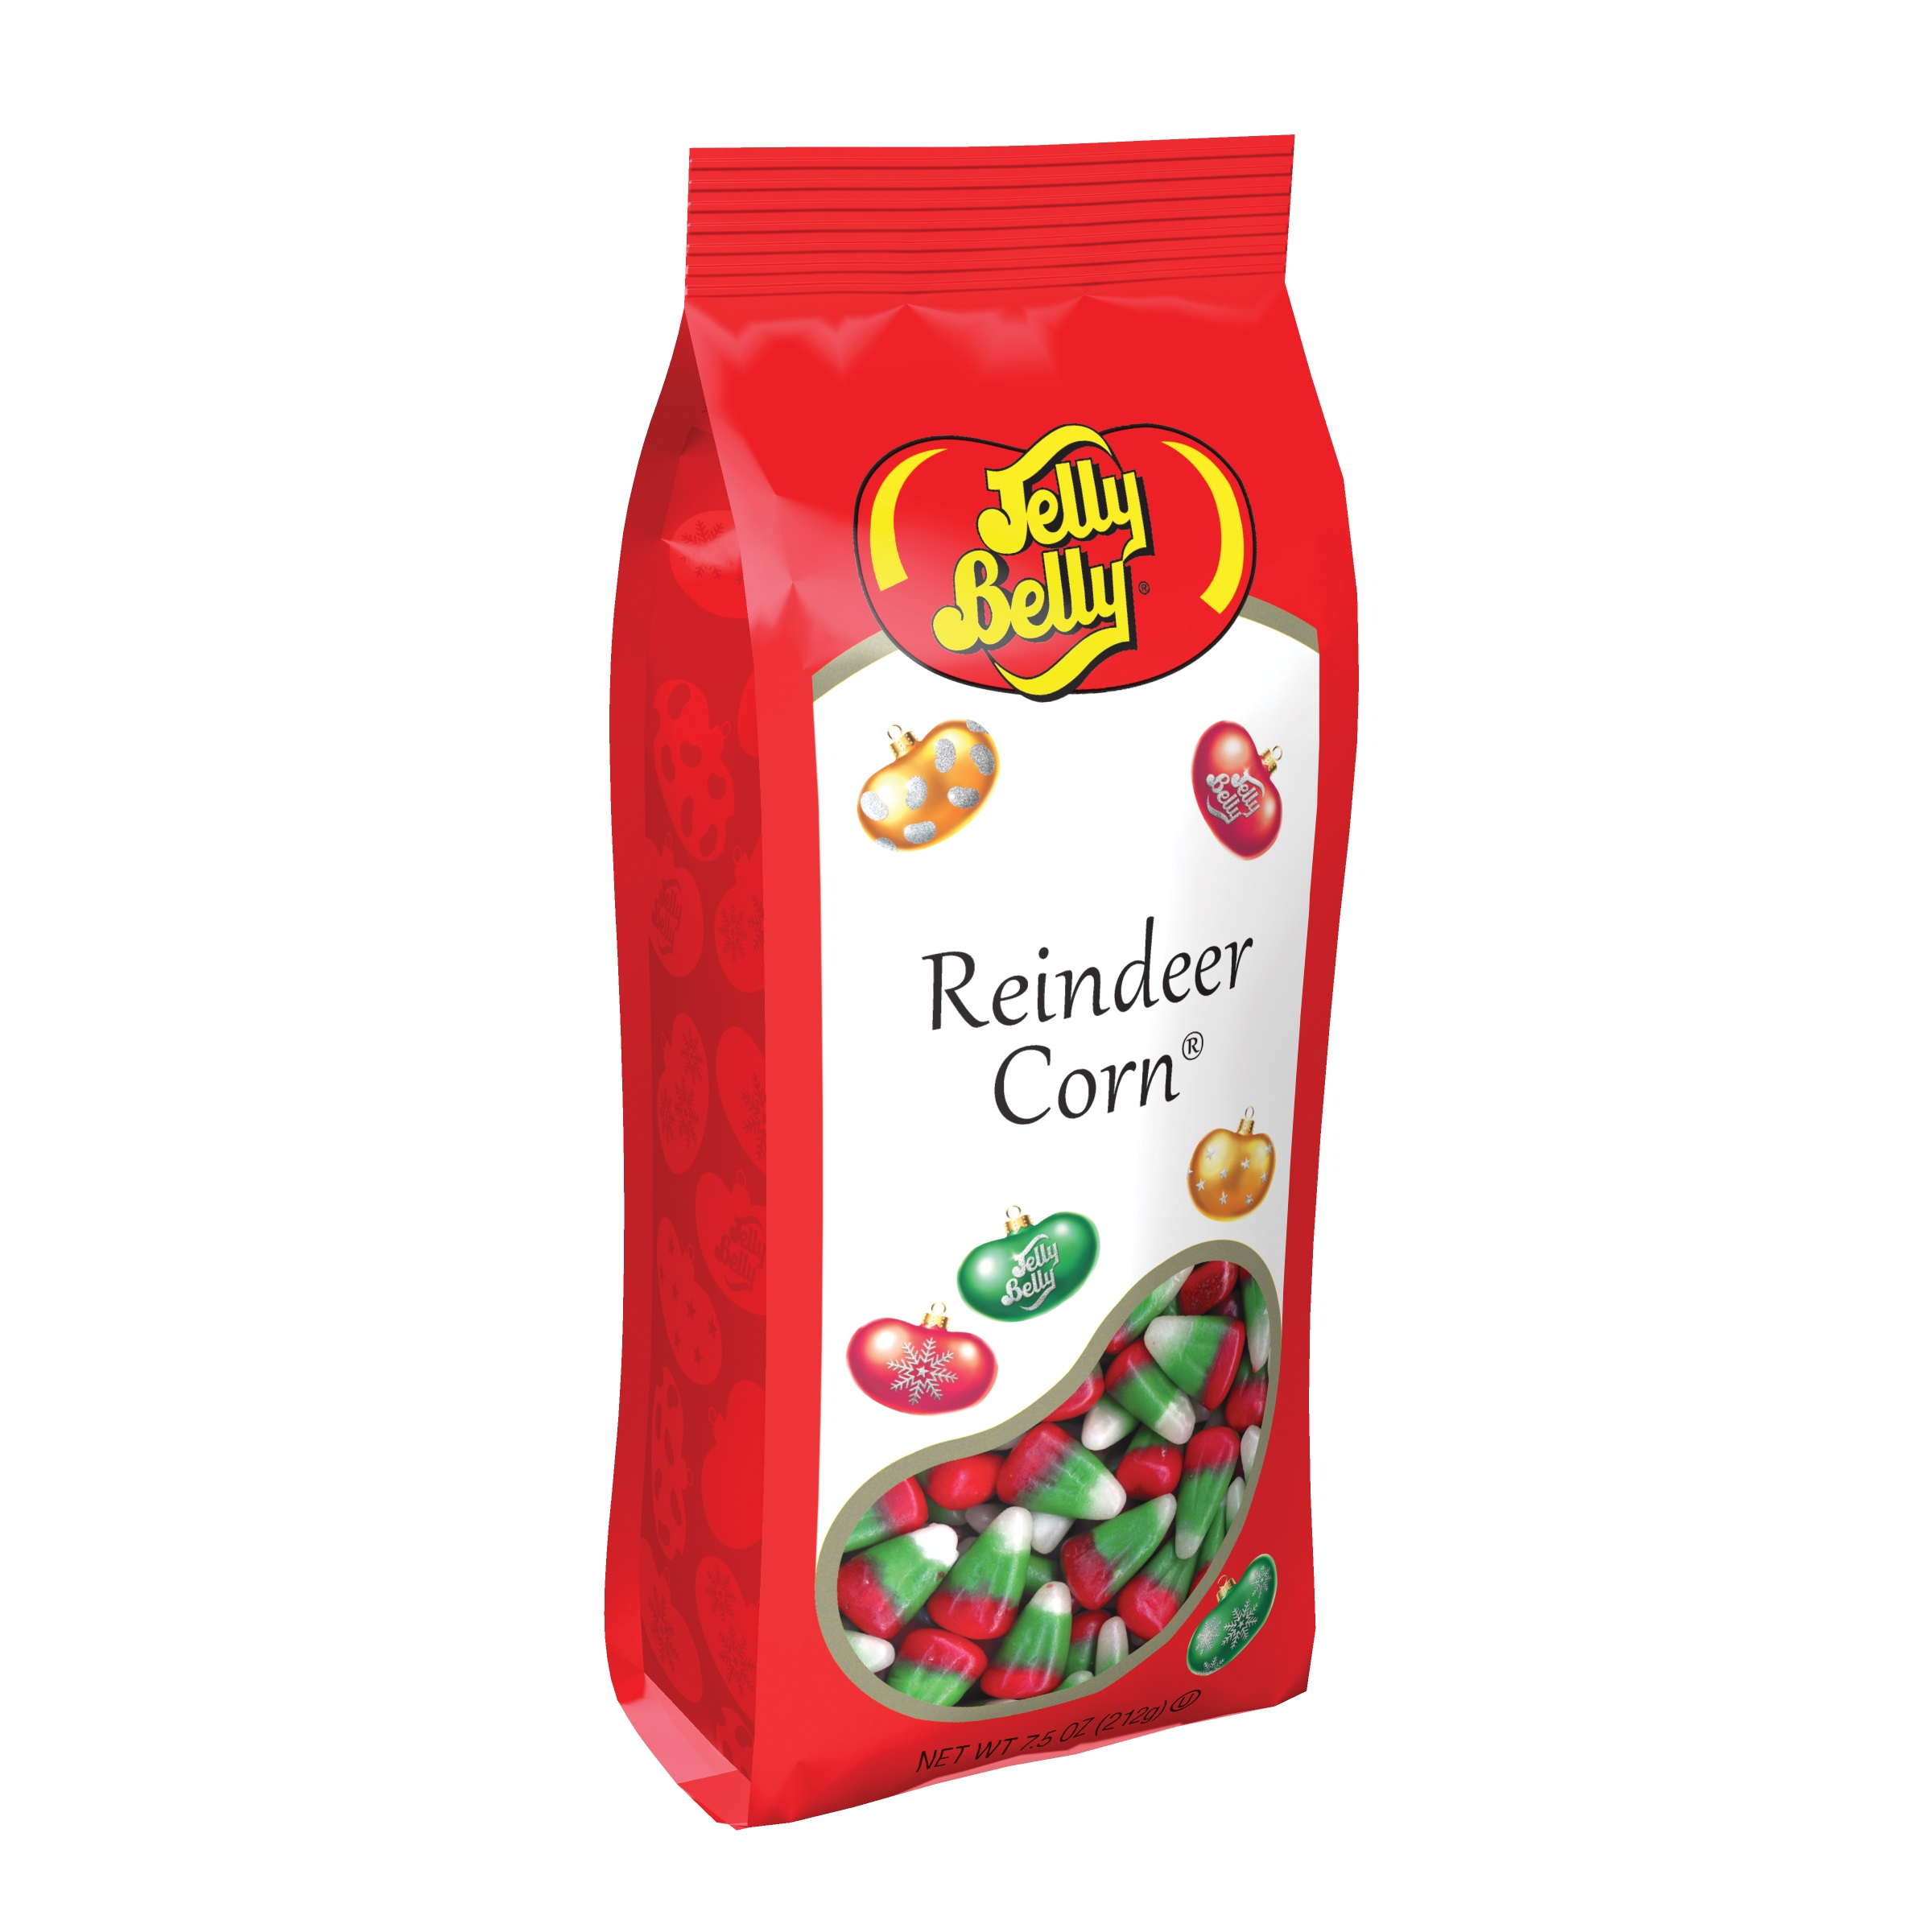 (G) 7.5 OZ REINDEER CORN BAGS-12 CT